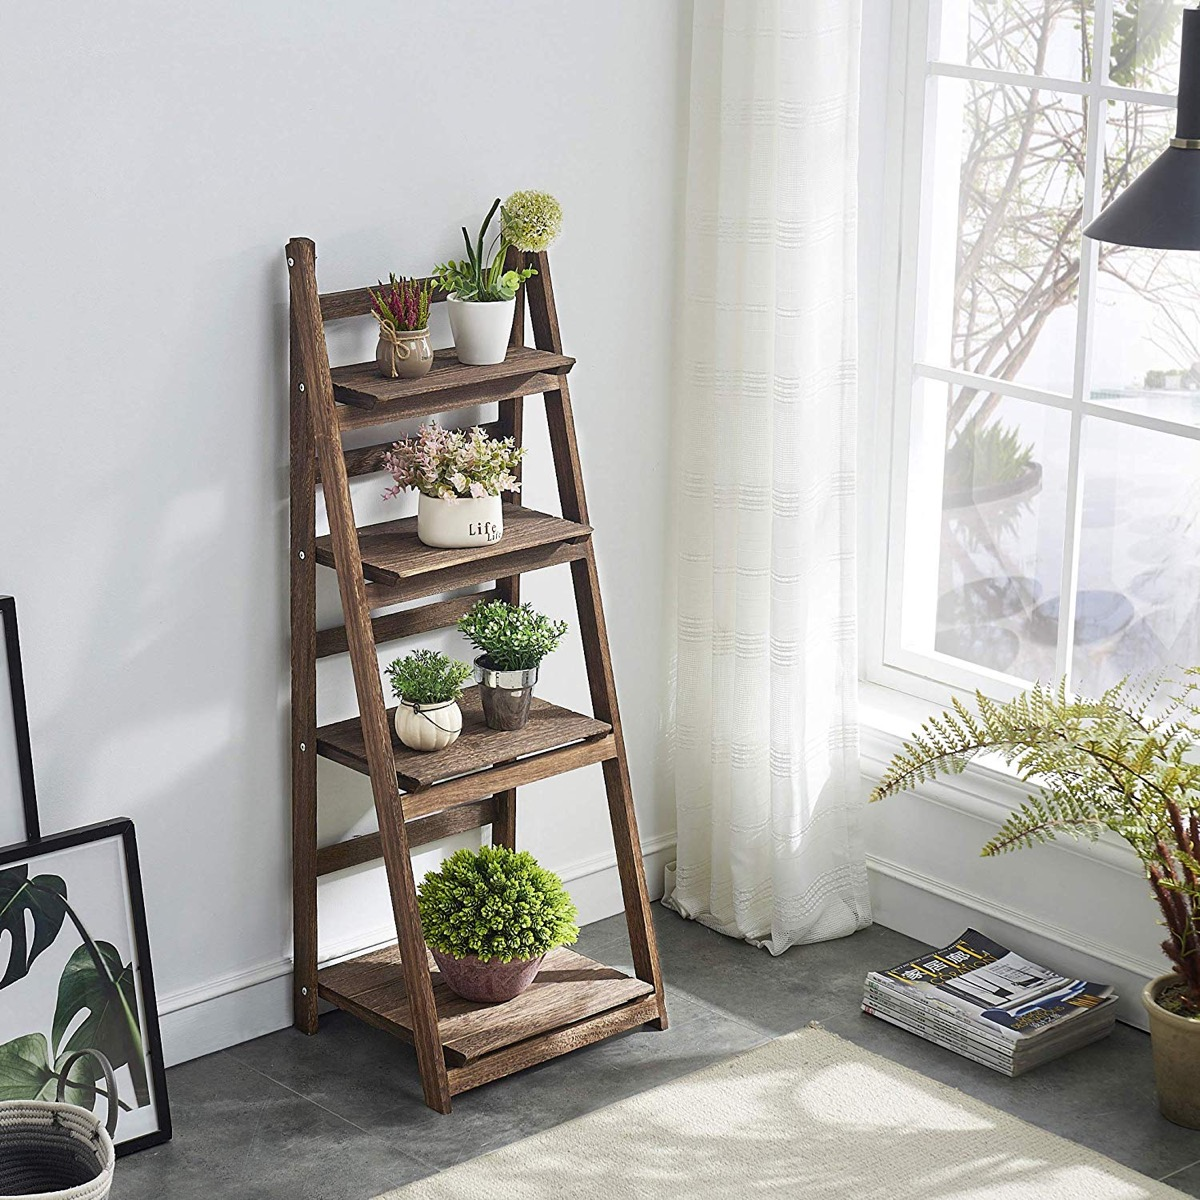 rustic-ladder-shelf-storage-inspiration-1